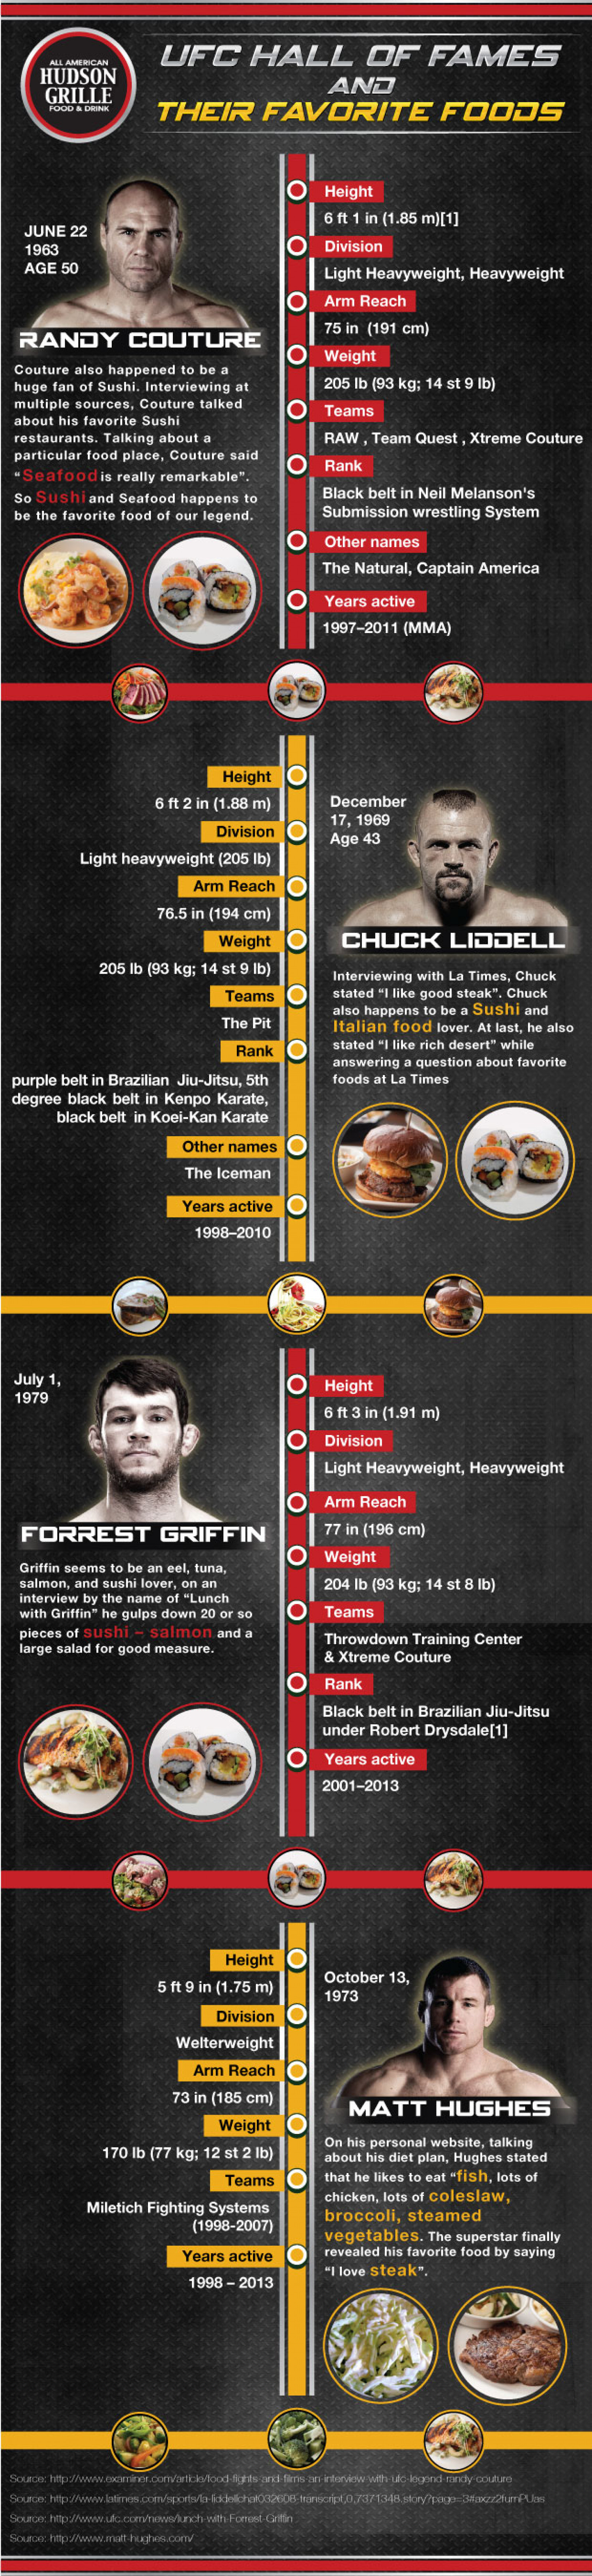 UFC Hall Of Fame And Their Favorite Food Infographic